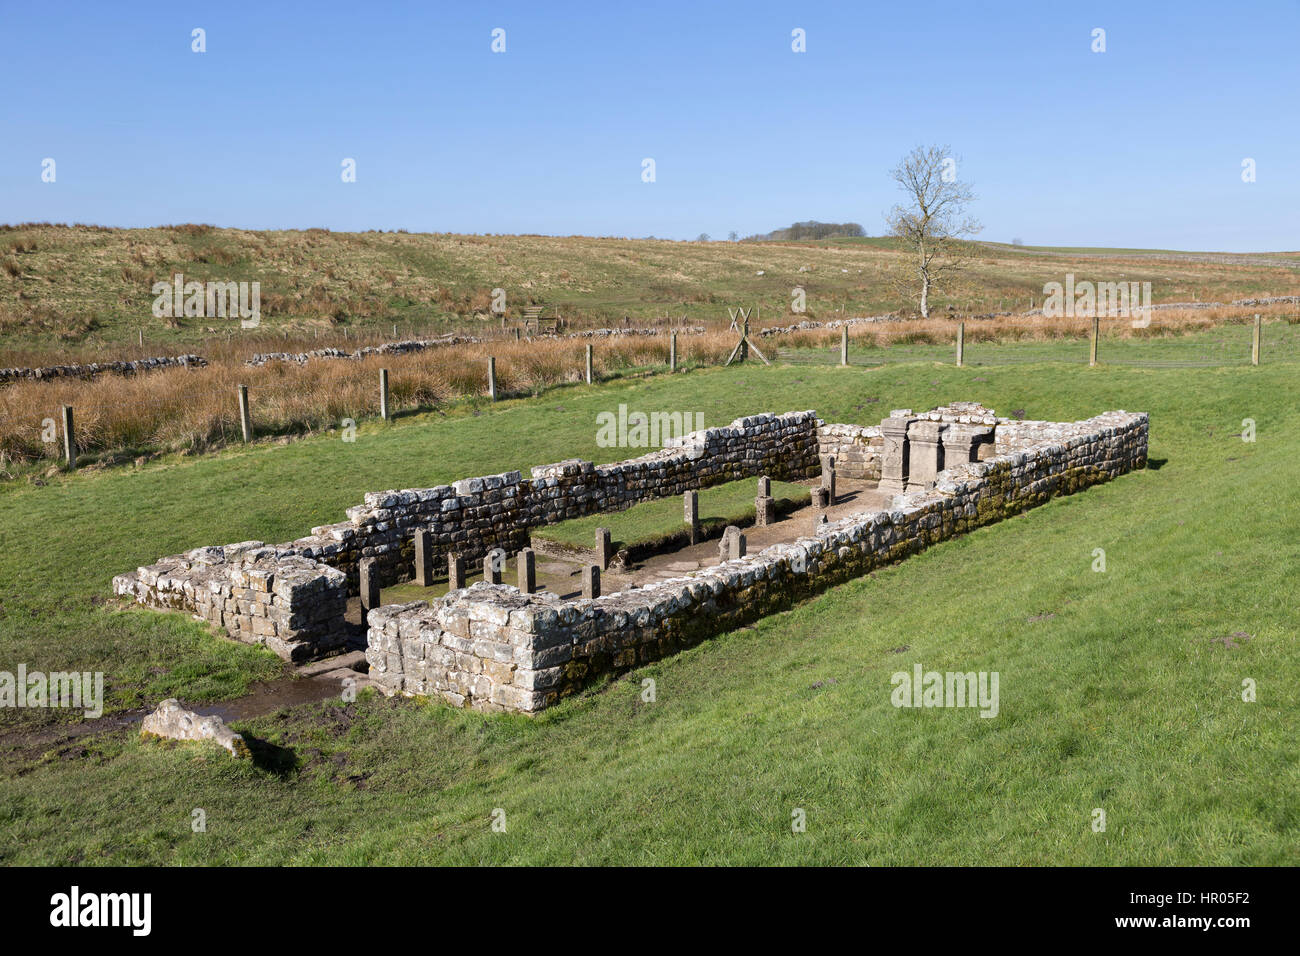 Hadrian's Wall: the remains of the Mithraeum near Carrawburgh (Brocilitia) Roman fort, Northumberland - Stock Image